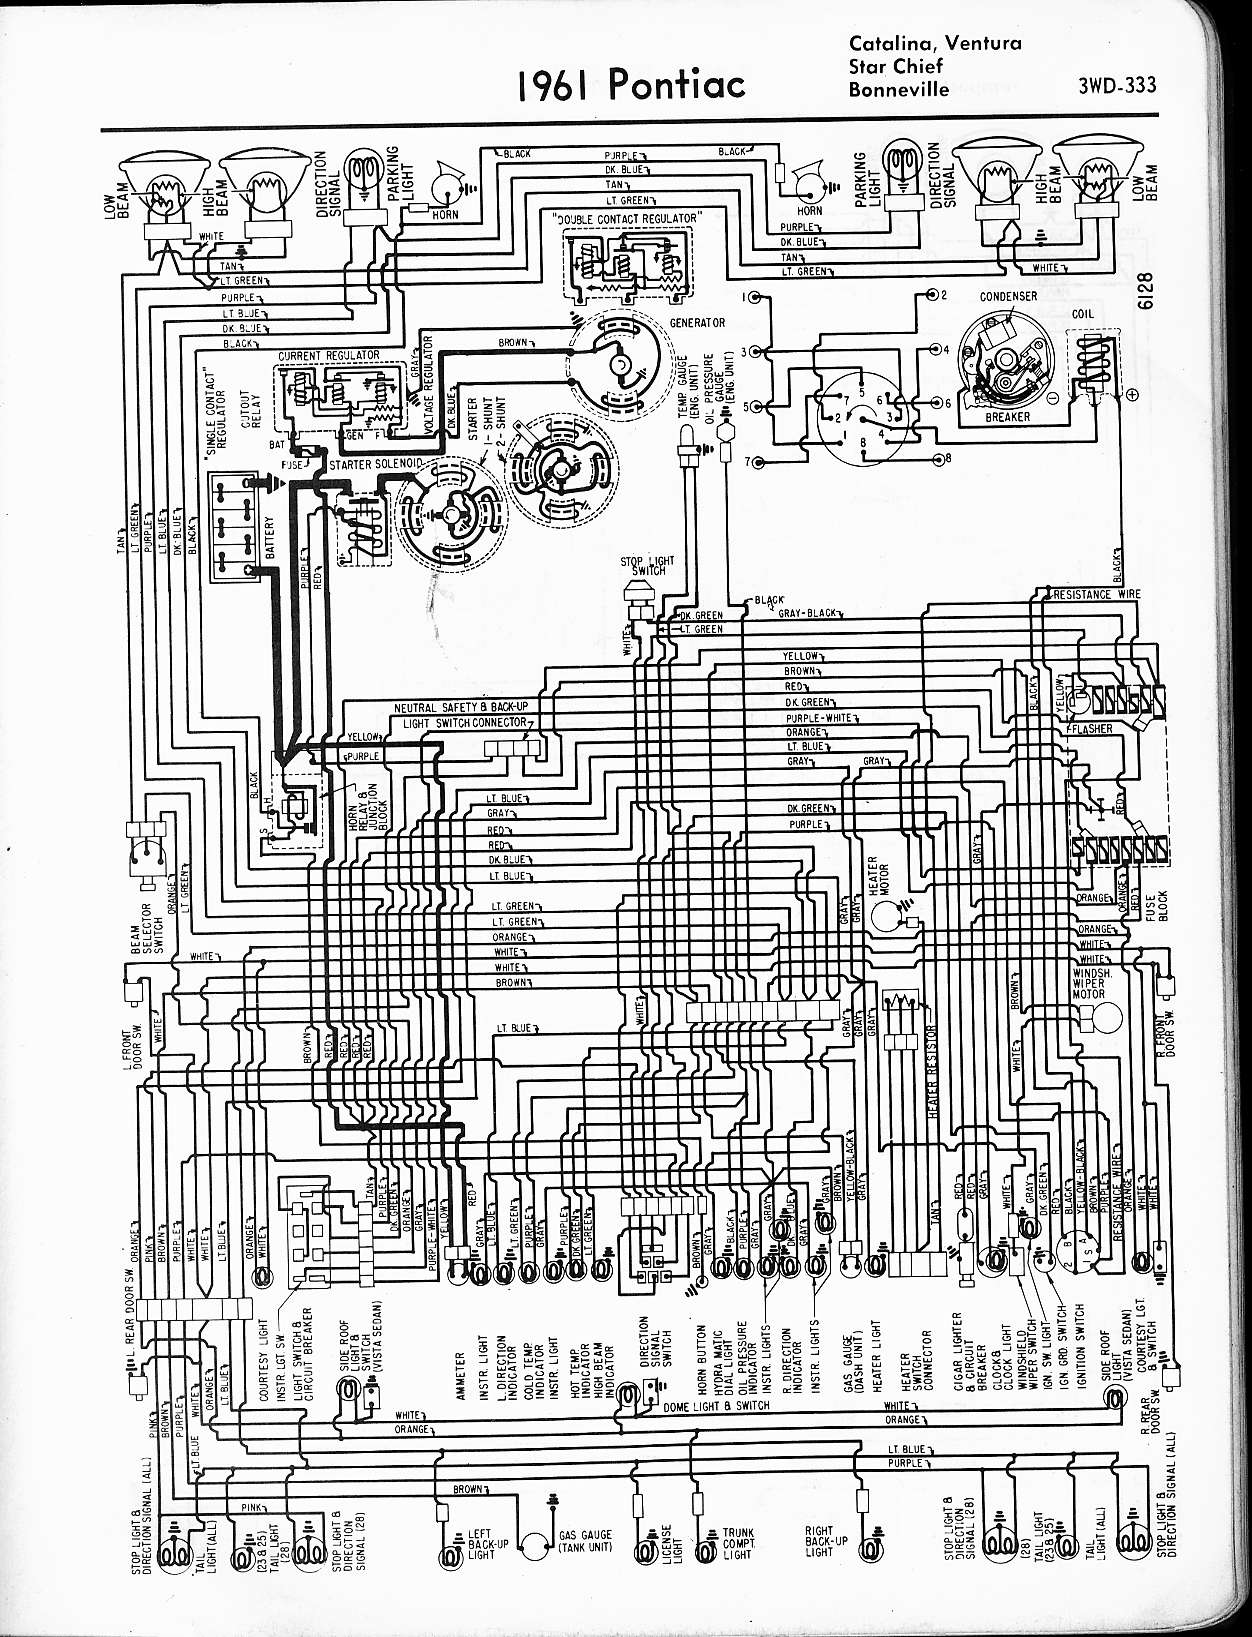 MWire5765 333 wiring diagram pontiac the wiring diagram readingrat net 2004 gto power seat wiring diagram at gsmx.co